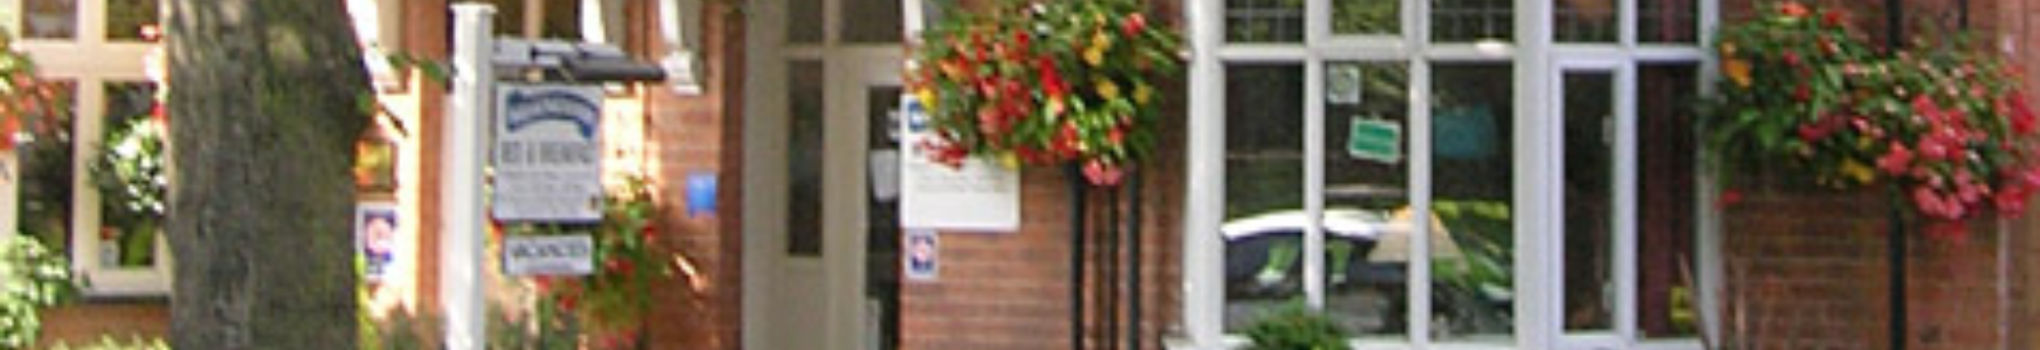 Salamander Guest House - Traditional Bed & Breakfast in Stratford-upon-Avon